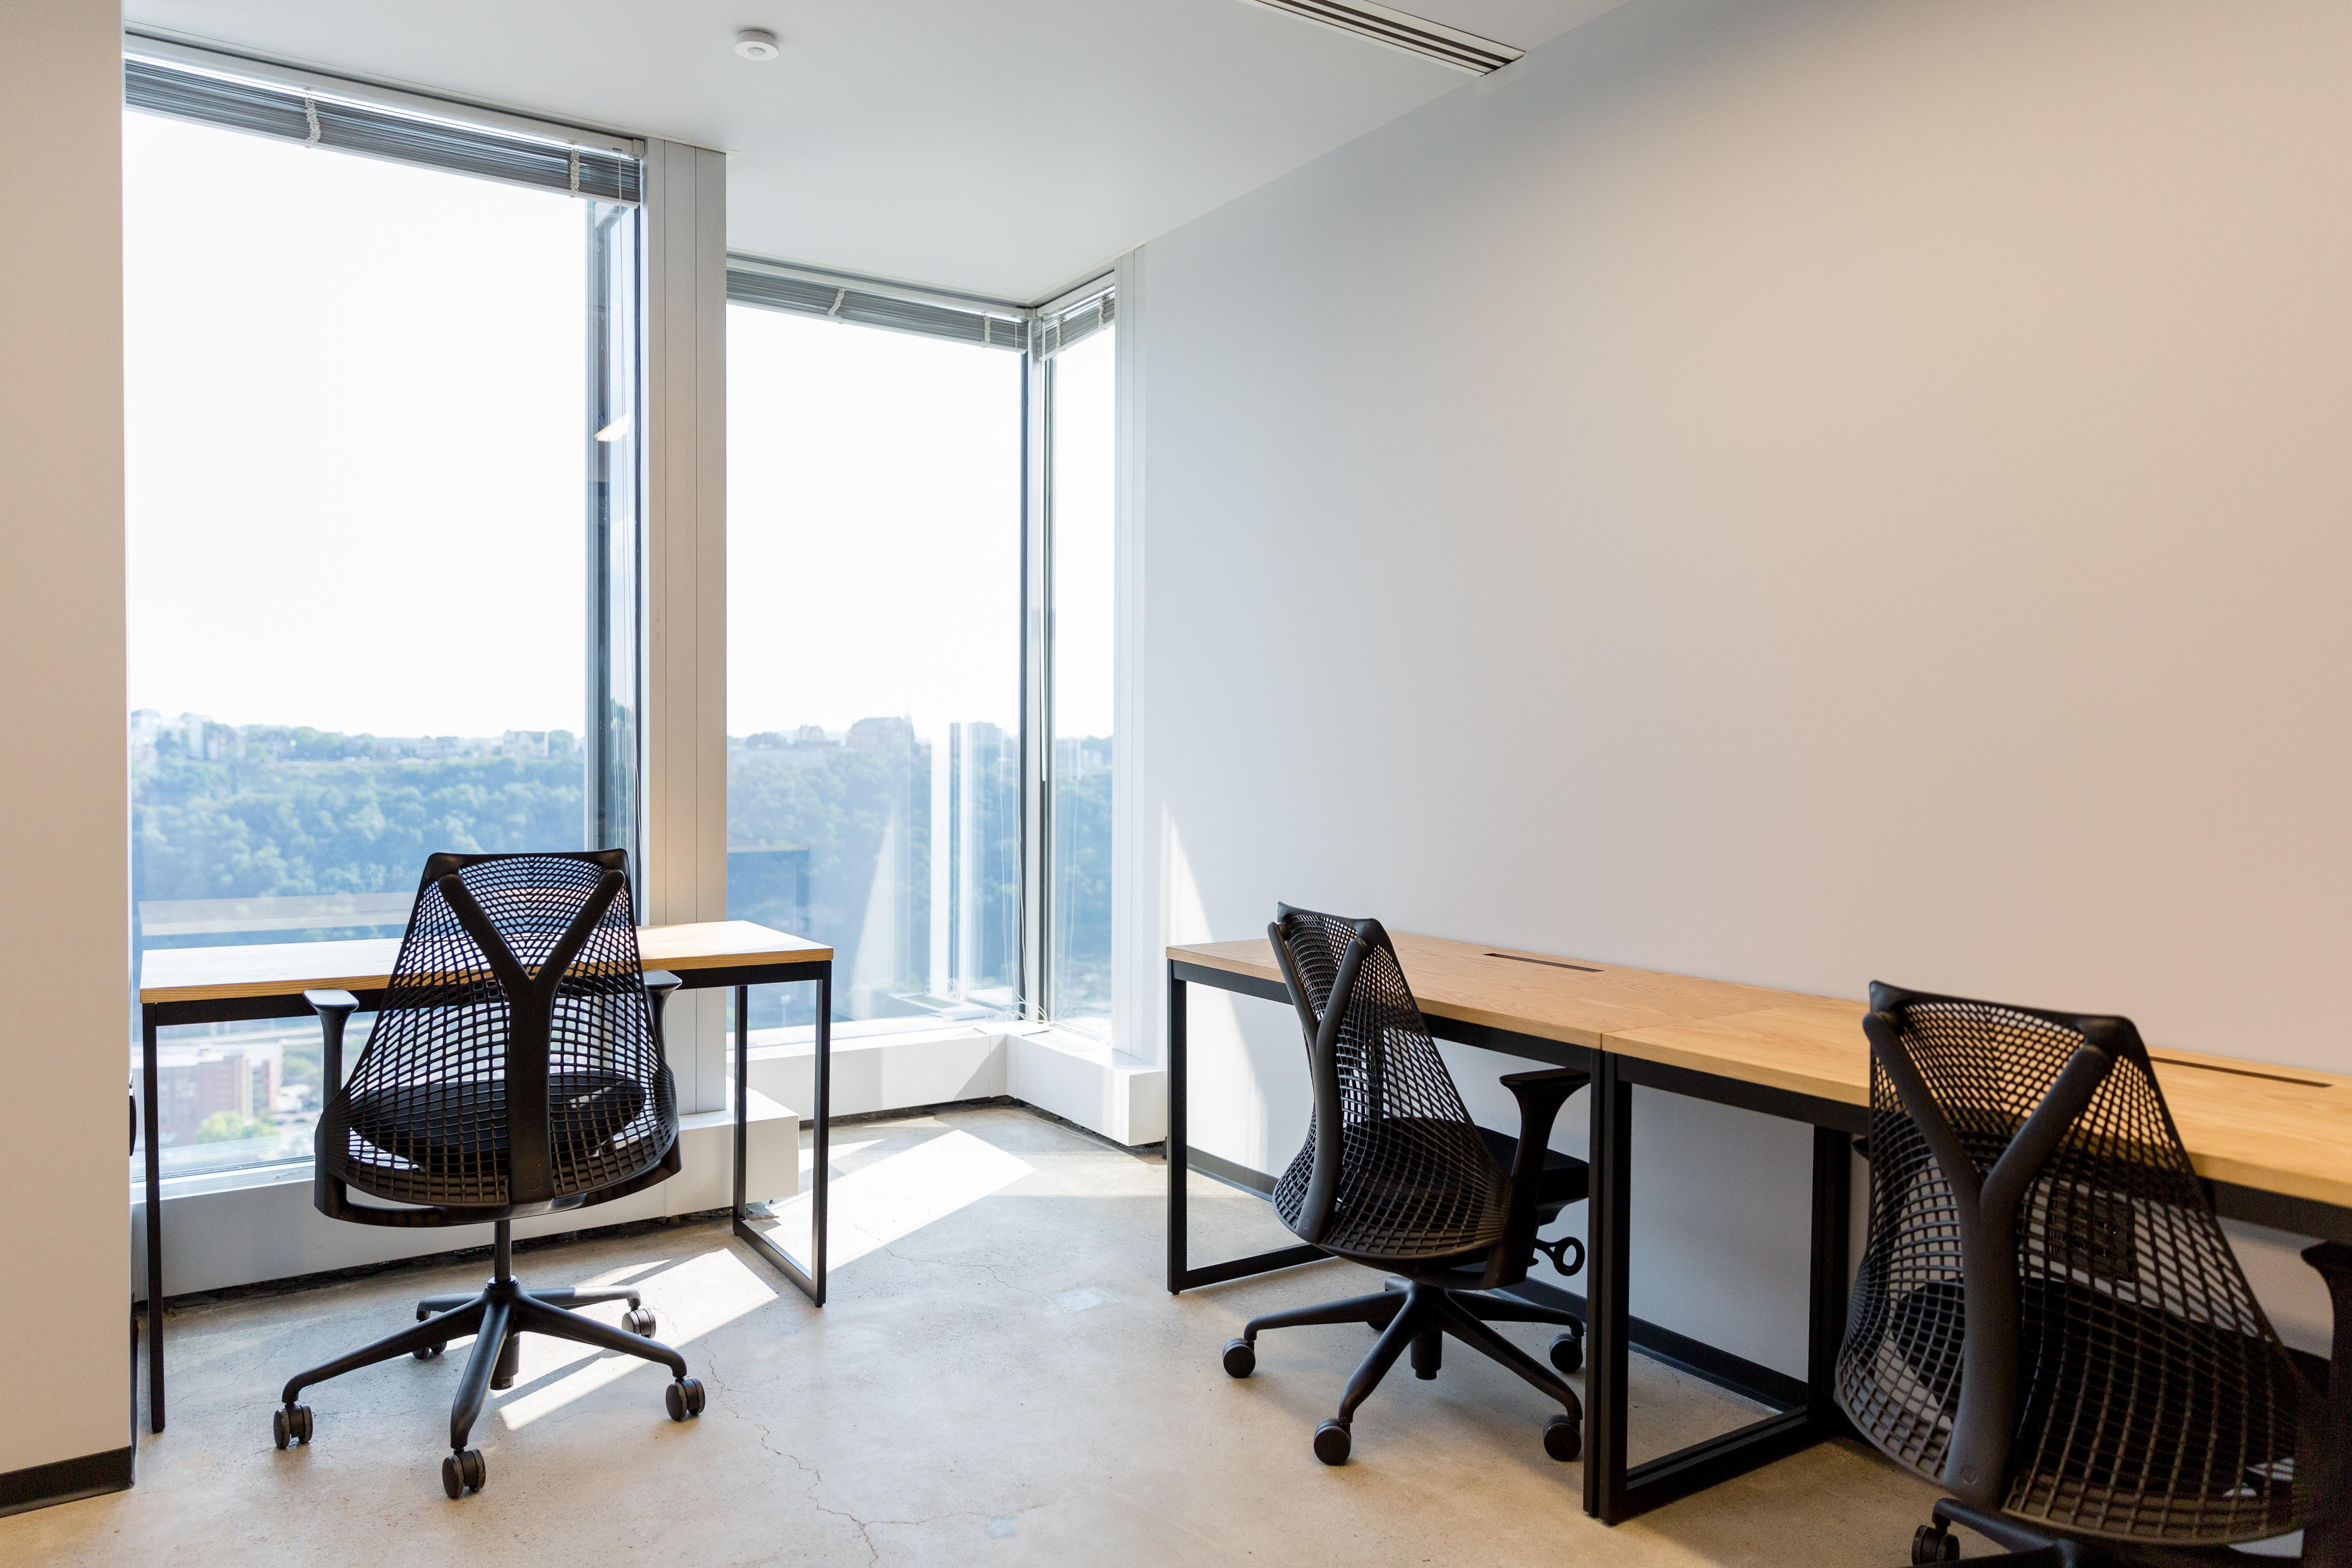 Industrious Pittsburgh - Team Space for 3